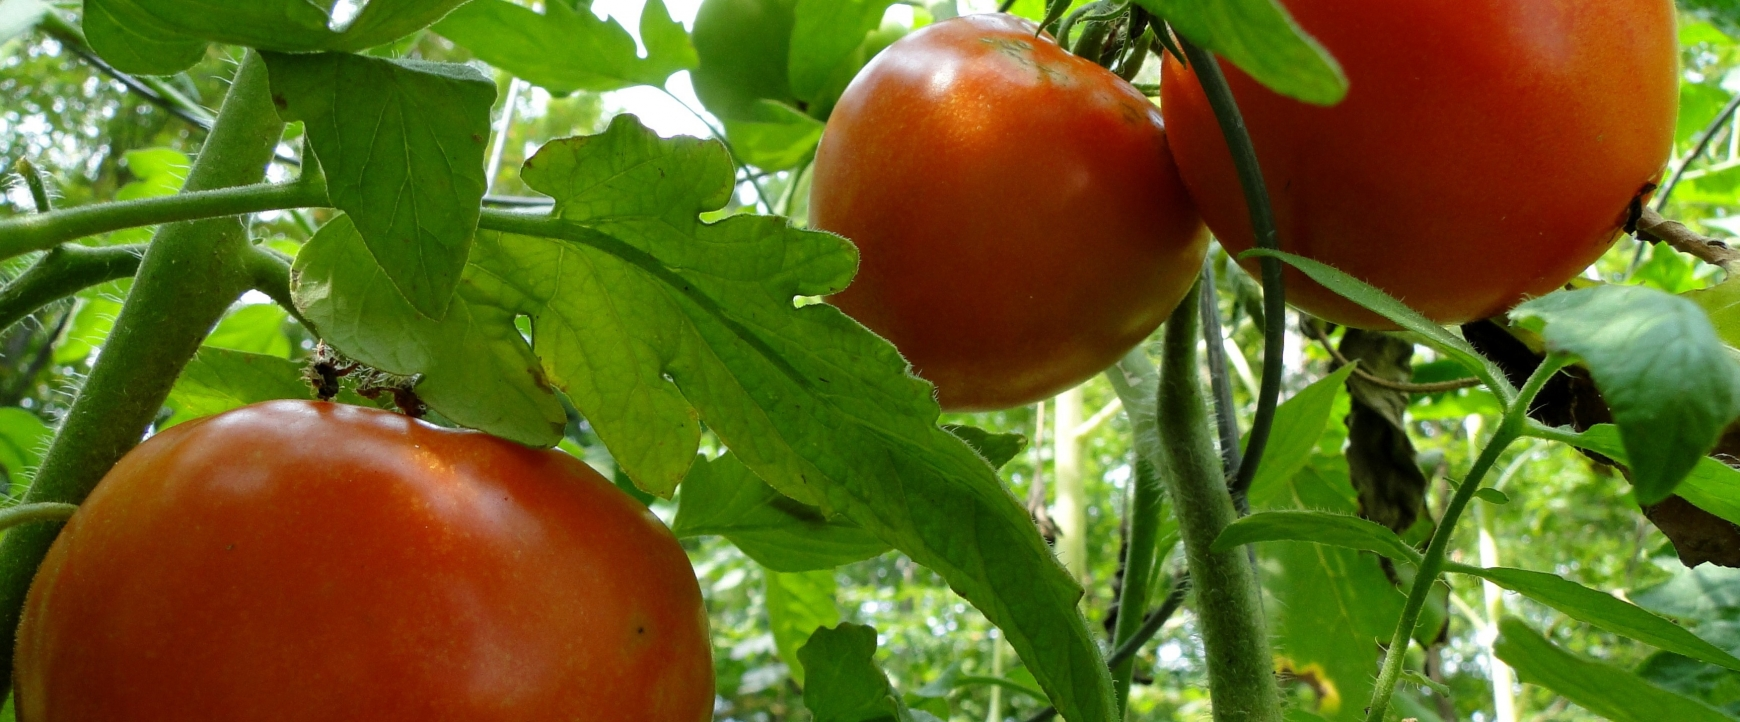 Tomatoes on a vine in a greenhouse